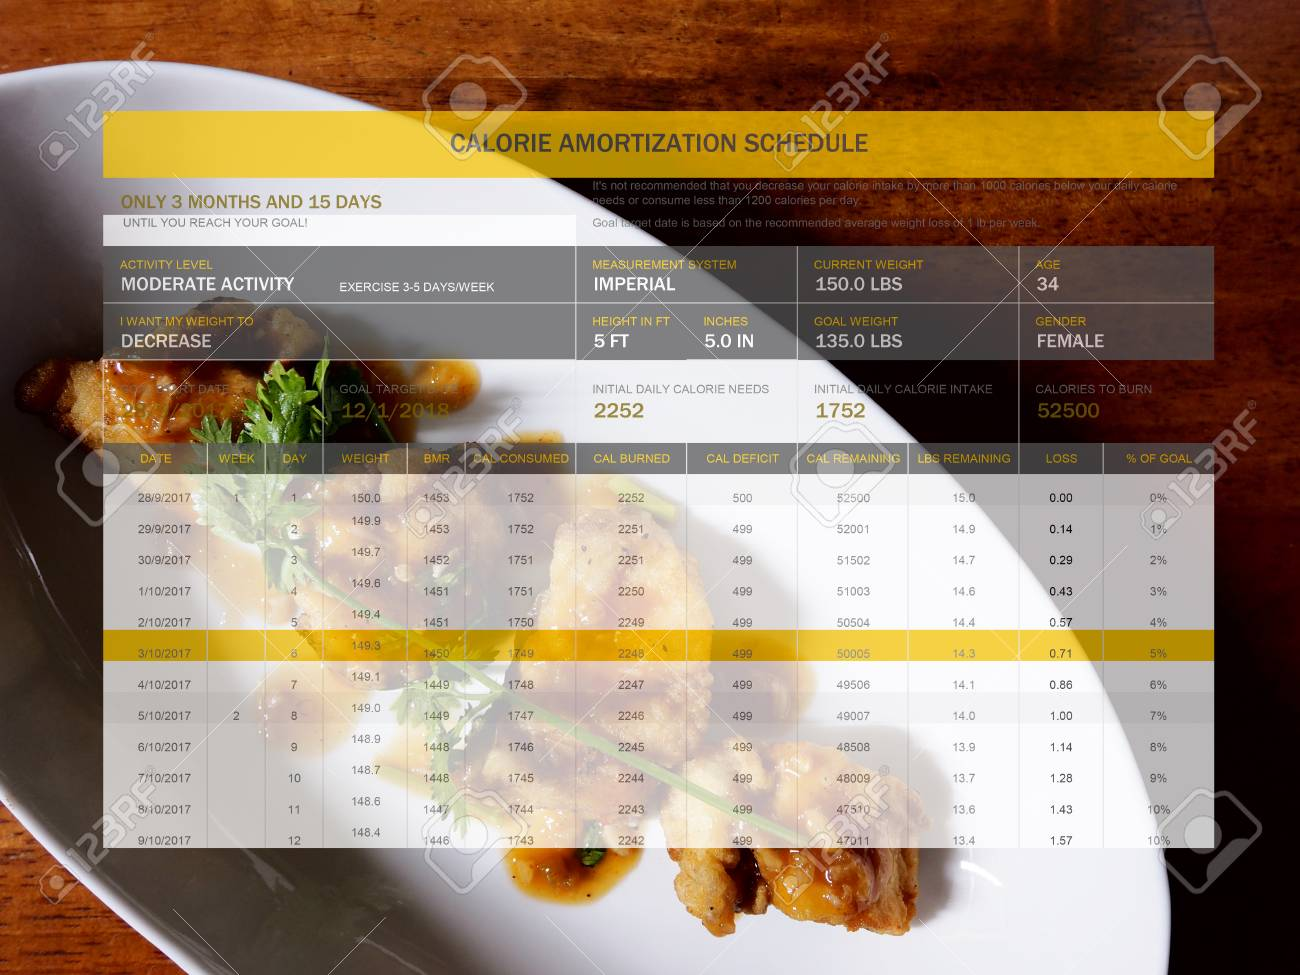 the picture of calorie amortization schedule on food background